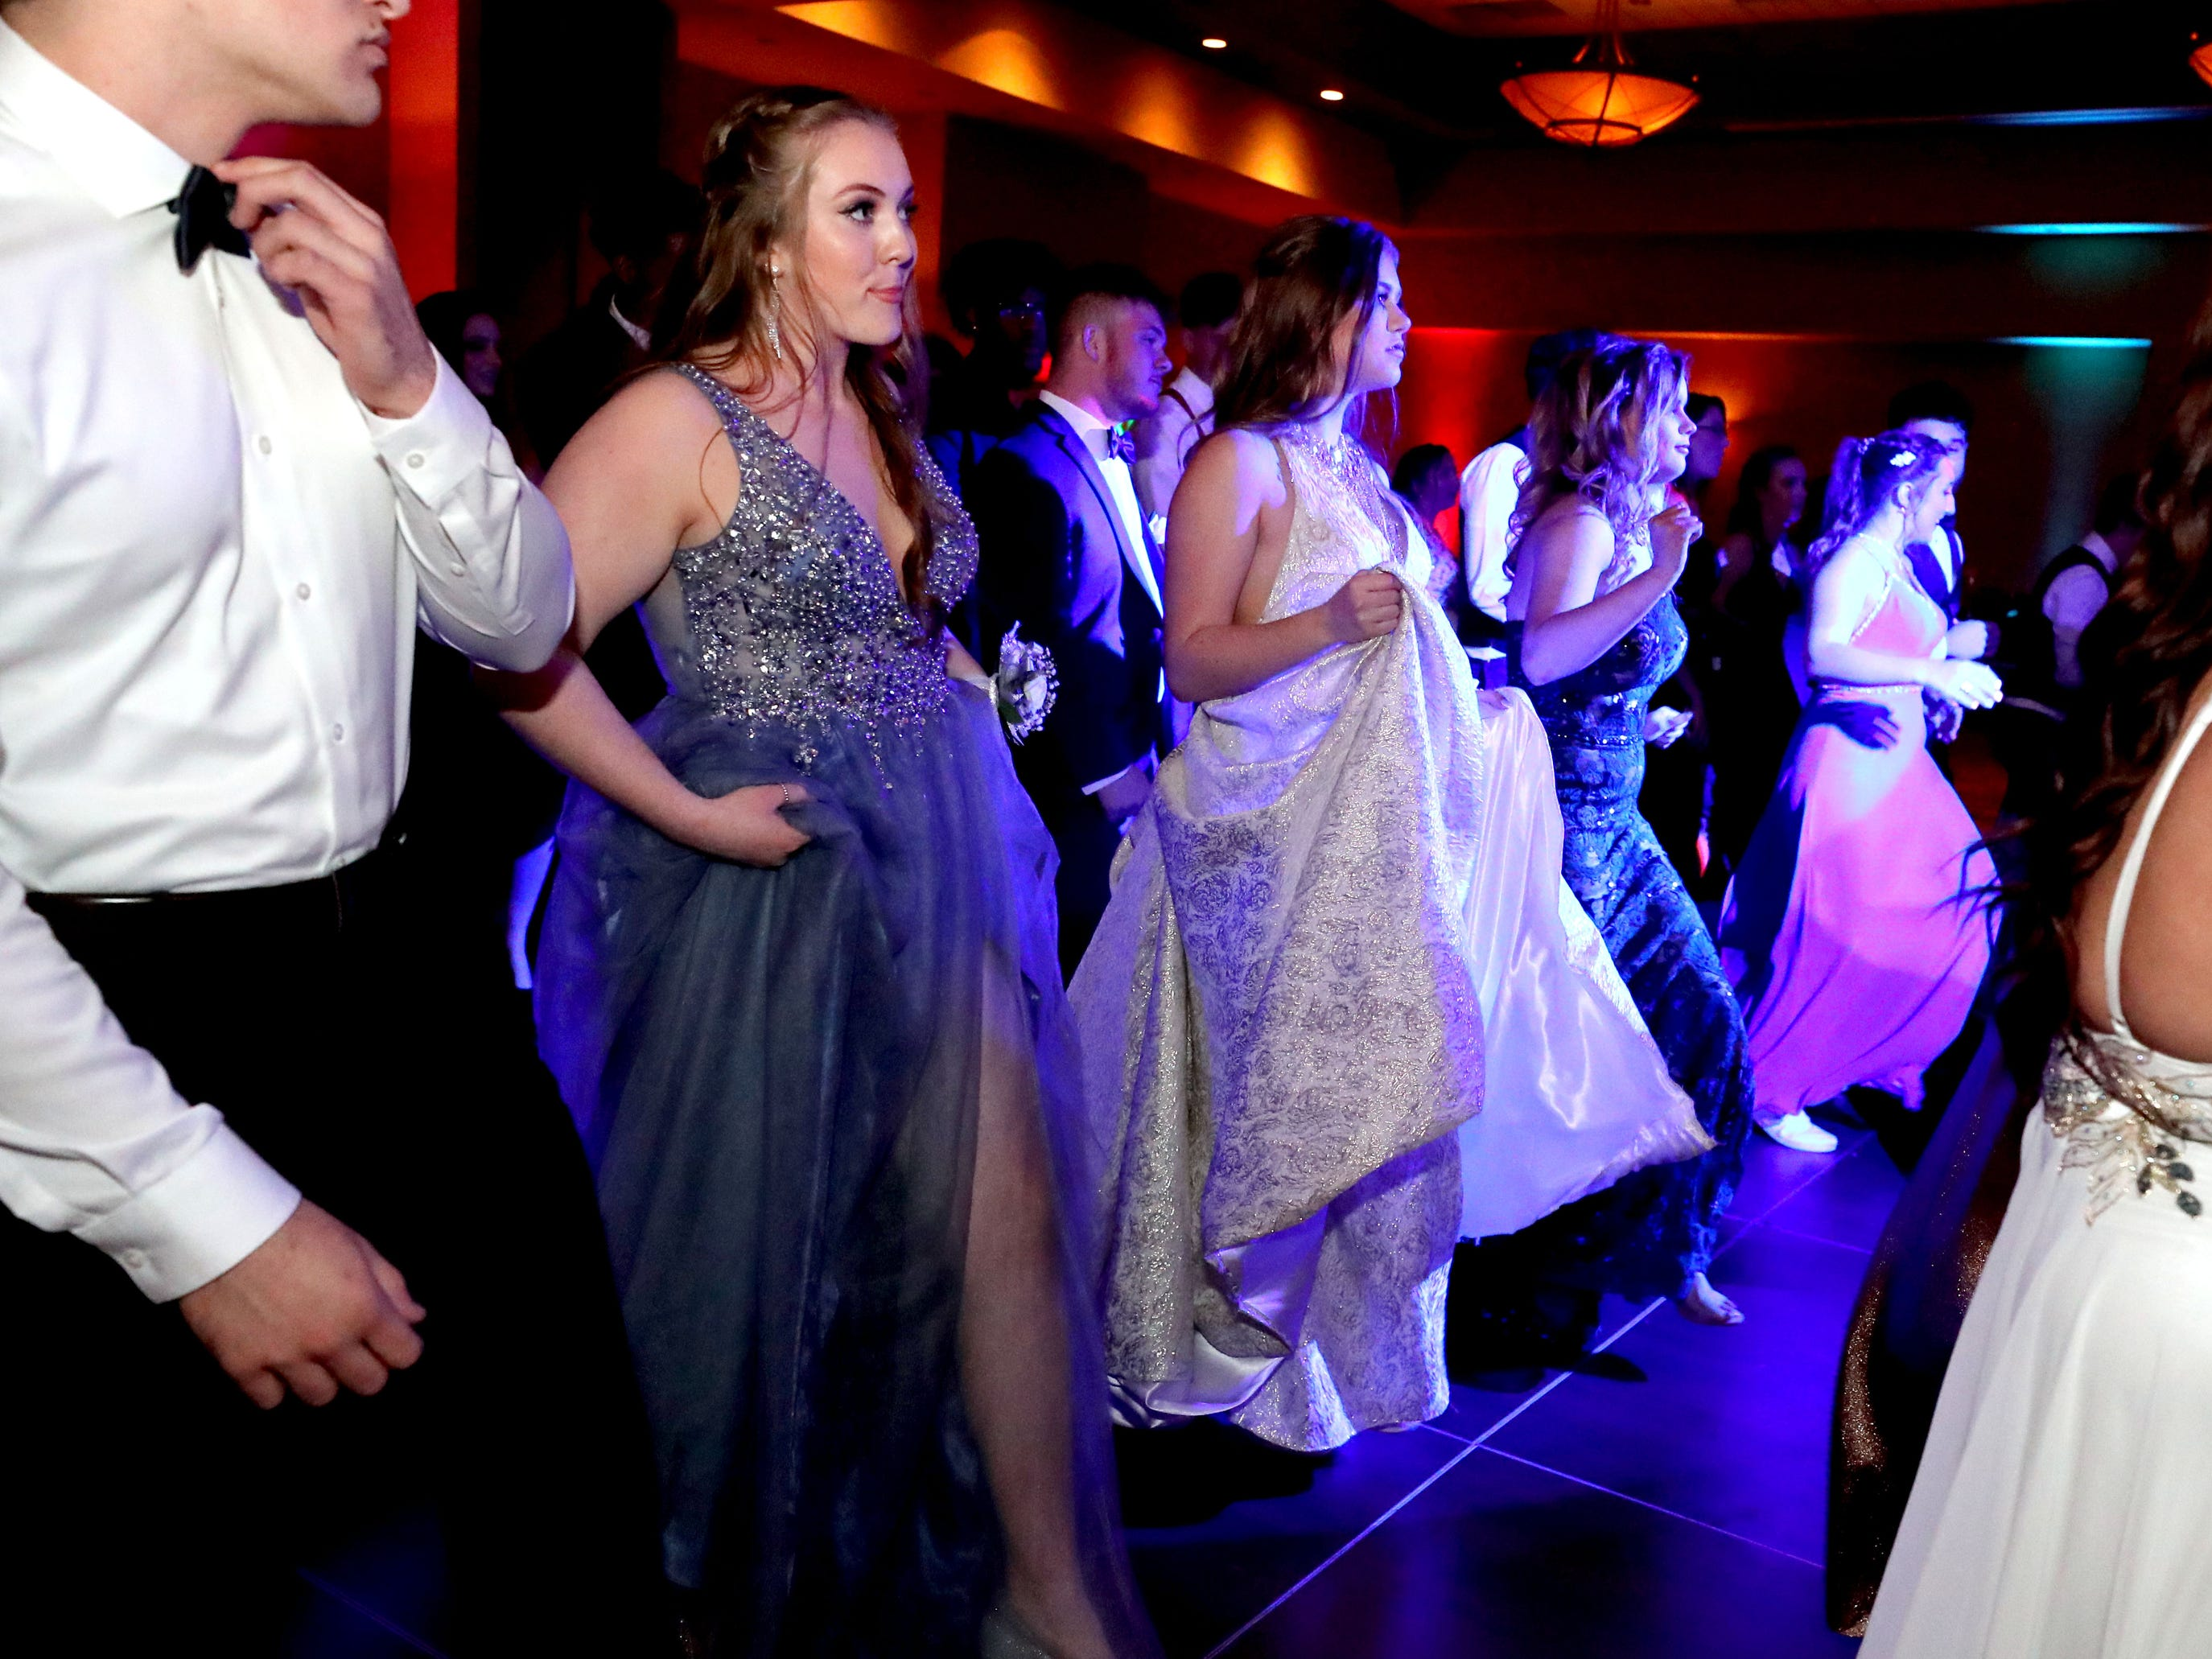 Students dance on the dance floor at Eagleville's Prom held at Embassy Suites, in Murfreesboro on Thursday April 5, 2019.